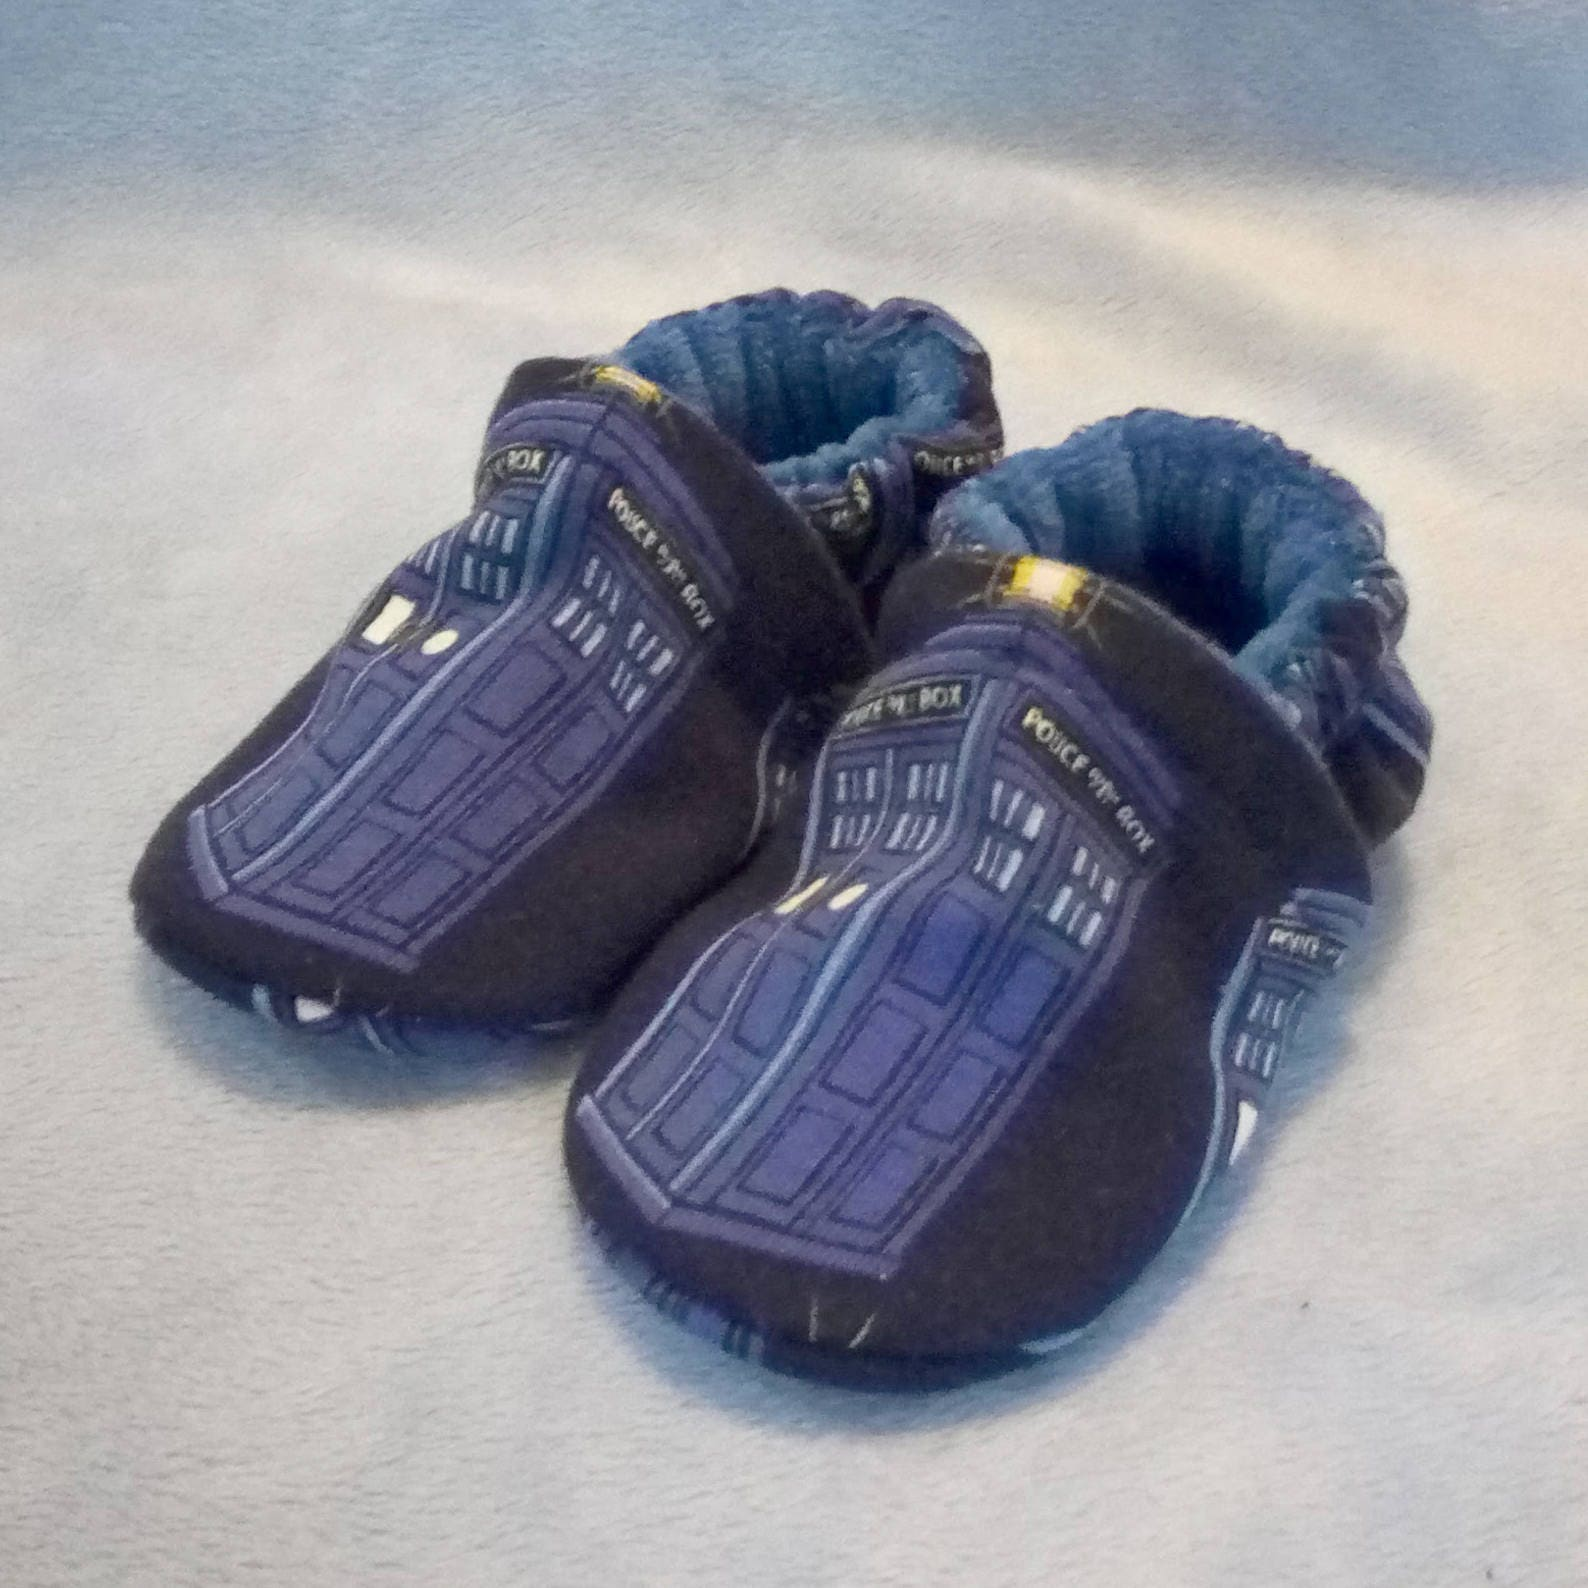 Tardis: Soft Sole Baby Shoes 3-6M